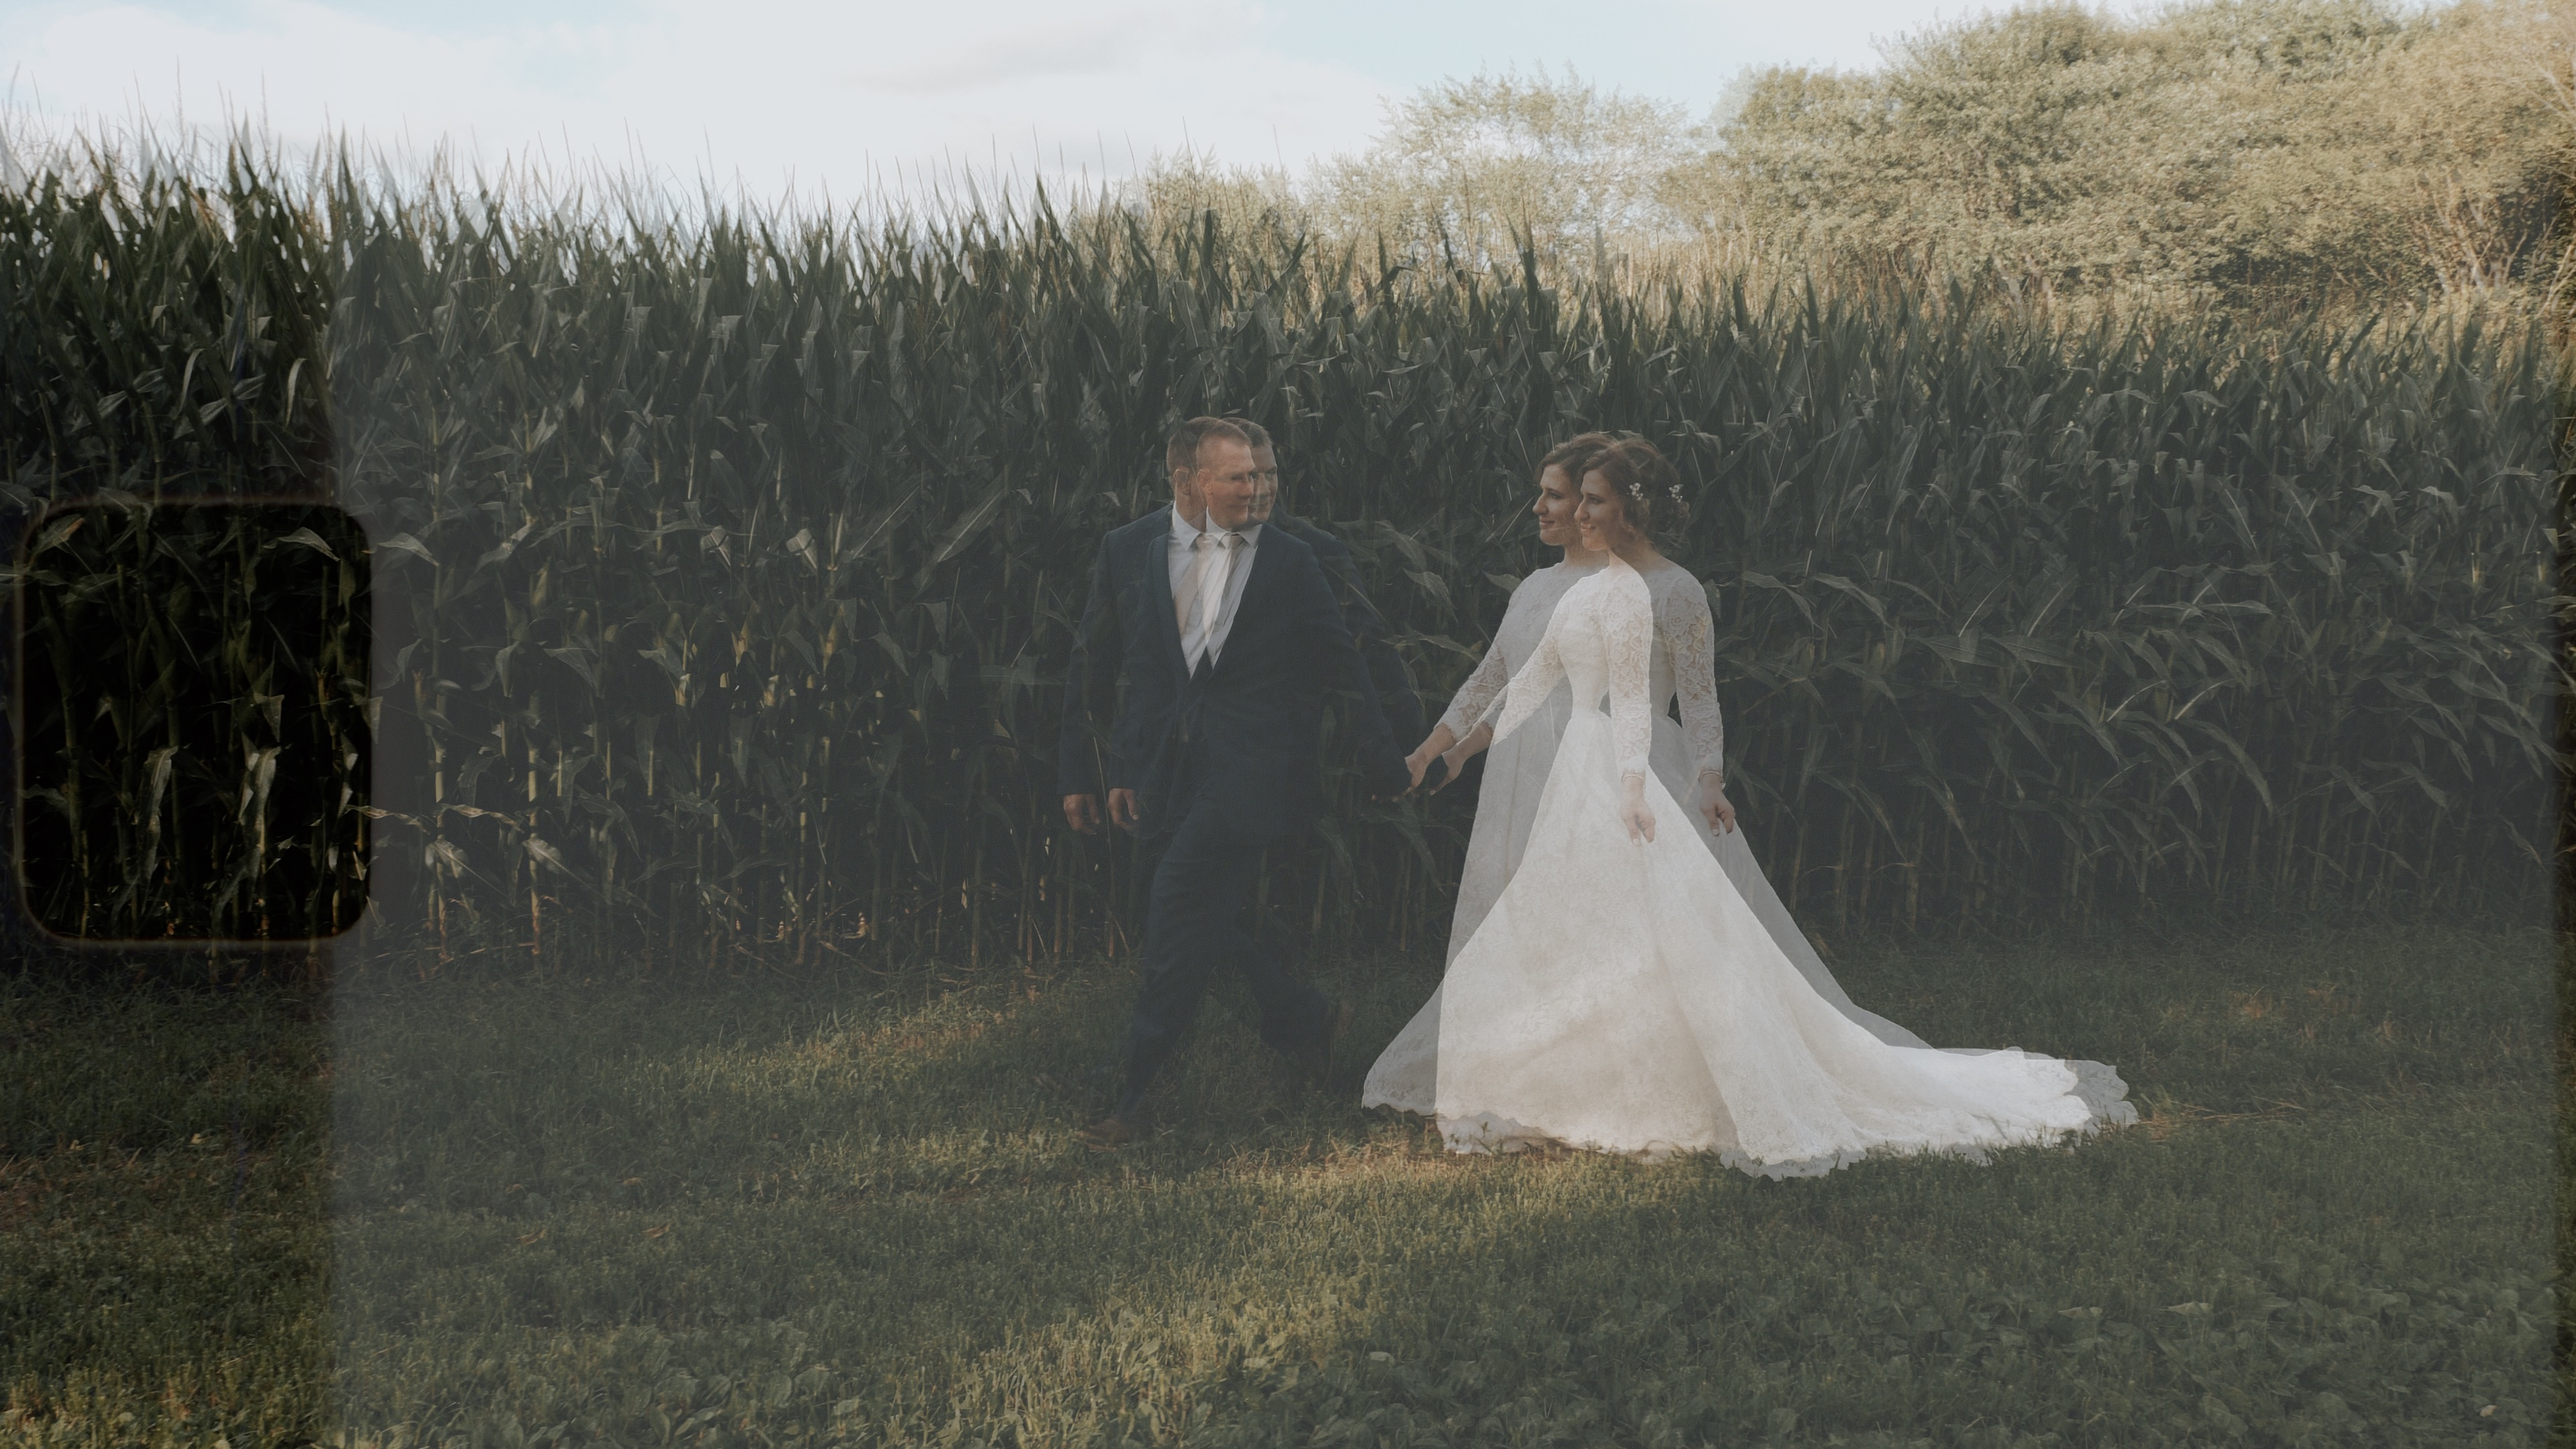 Aleana + Dustin | Osage, Iowa | Family Farm